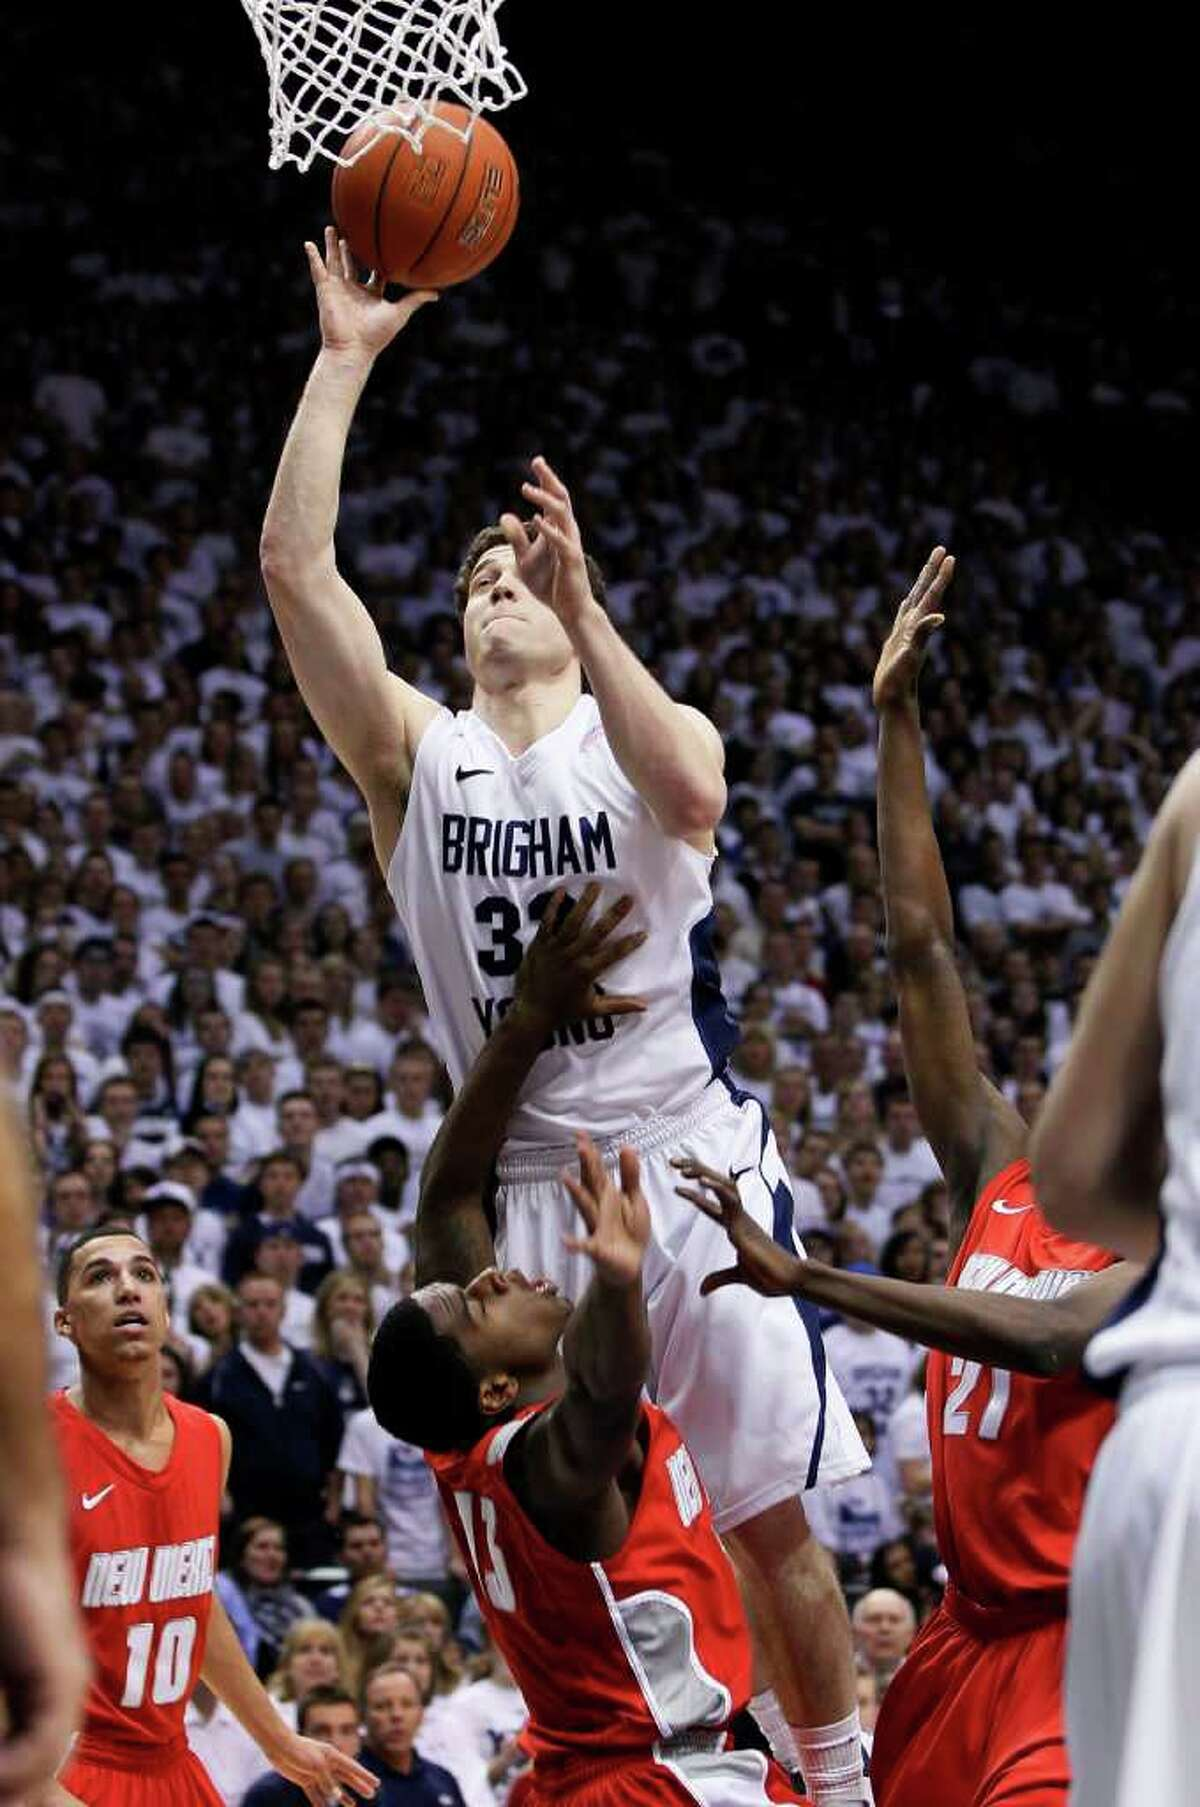 BYU guard Jimmer Fredette (32) attempts to score over New Mexico guard Jamal Fenton (13) during the first half of an NCAA college basketball game in Provo, Utah, Wednesday, March 2, 2011. Fredette was called for charging on the play. (AP Photo/Colin E Braley)